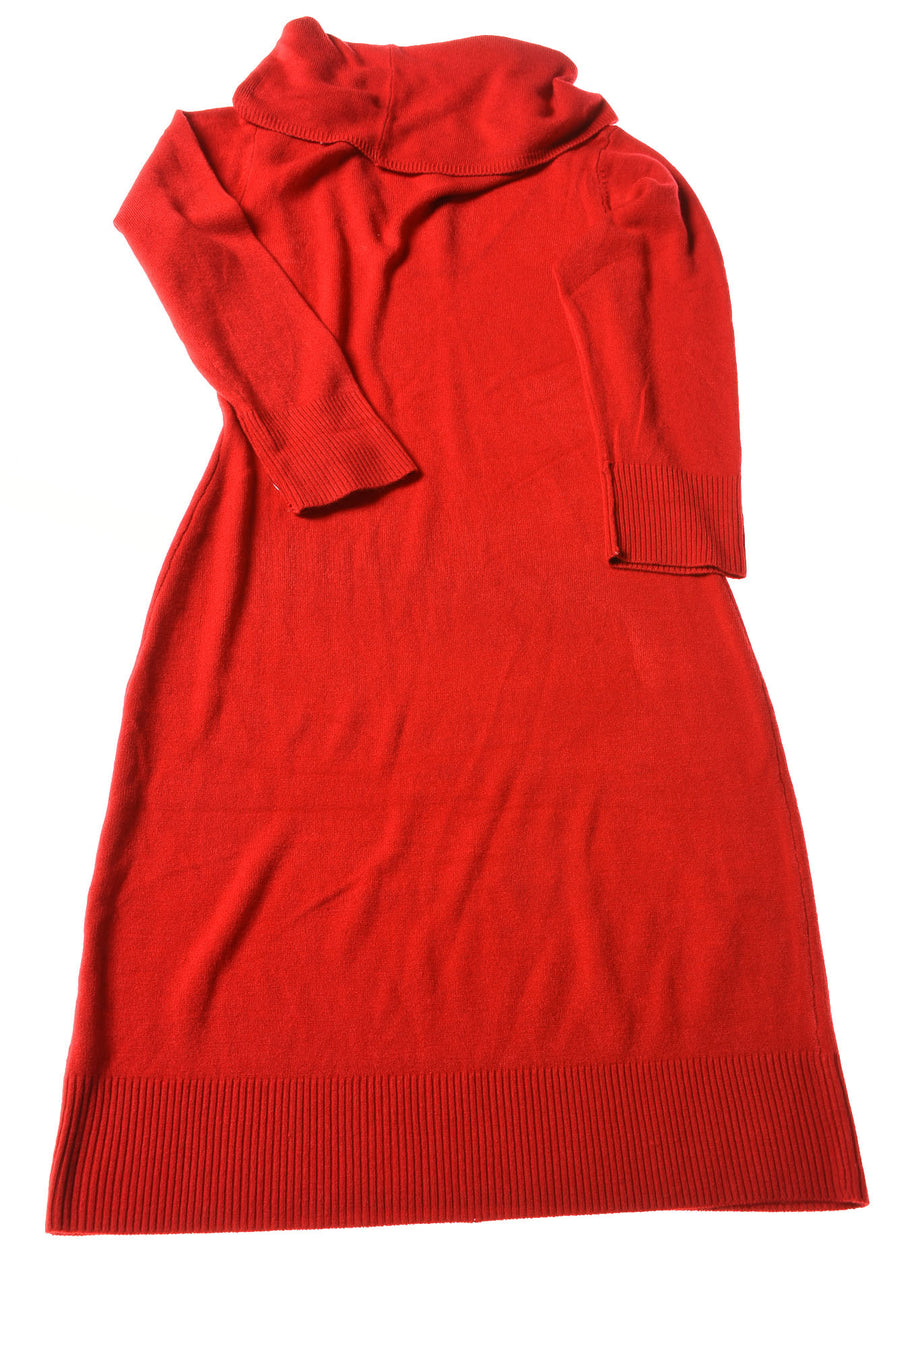 NEW New York & Company Women's Dress Large Red